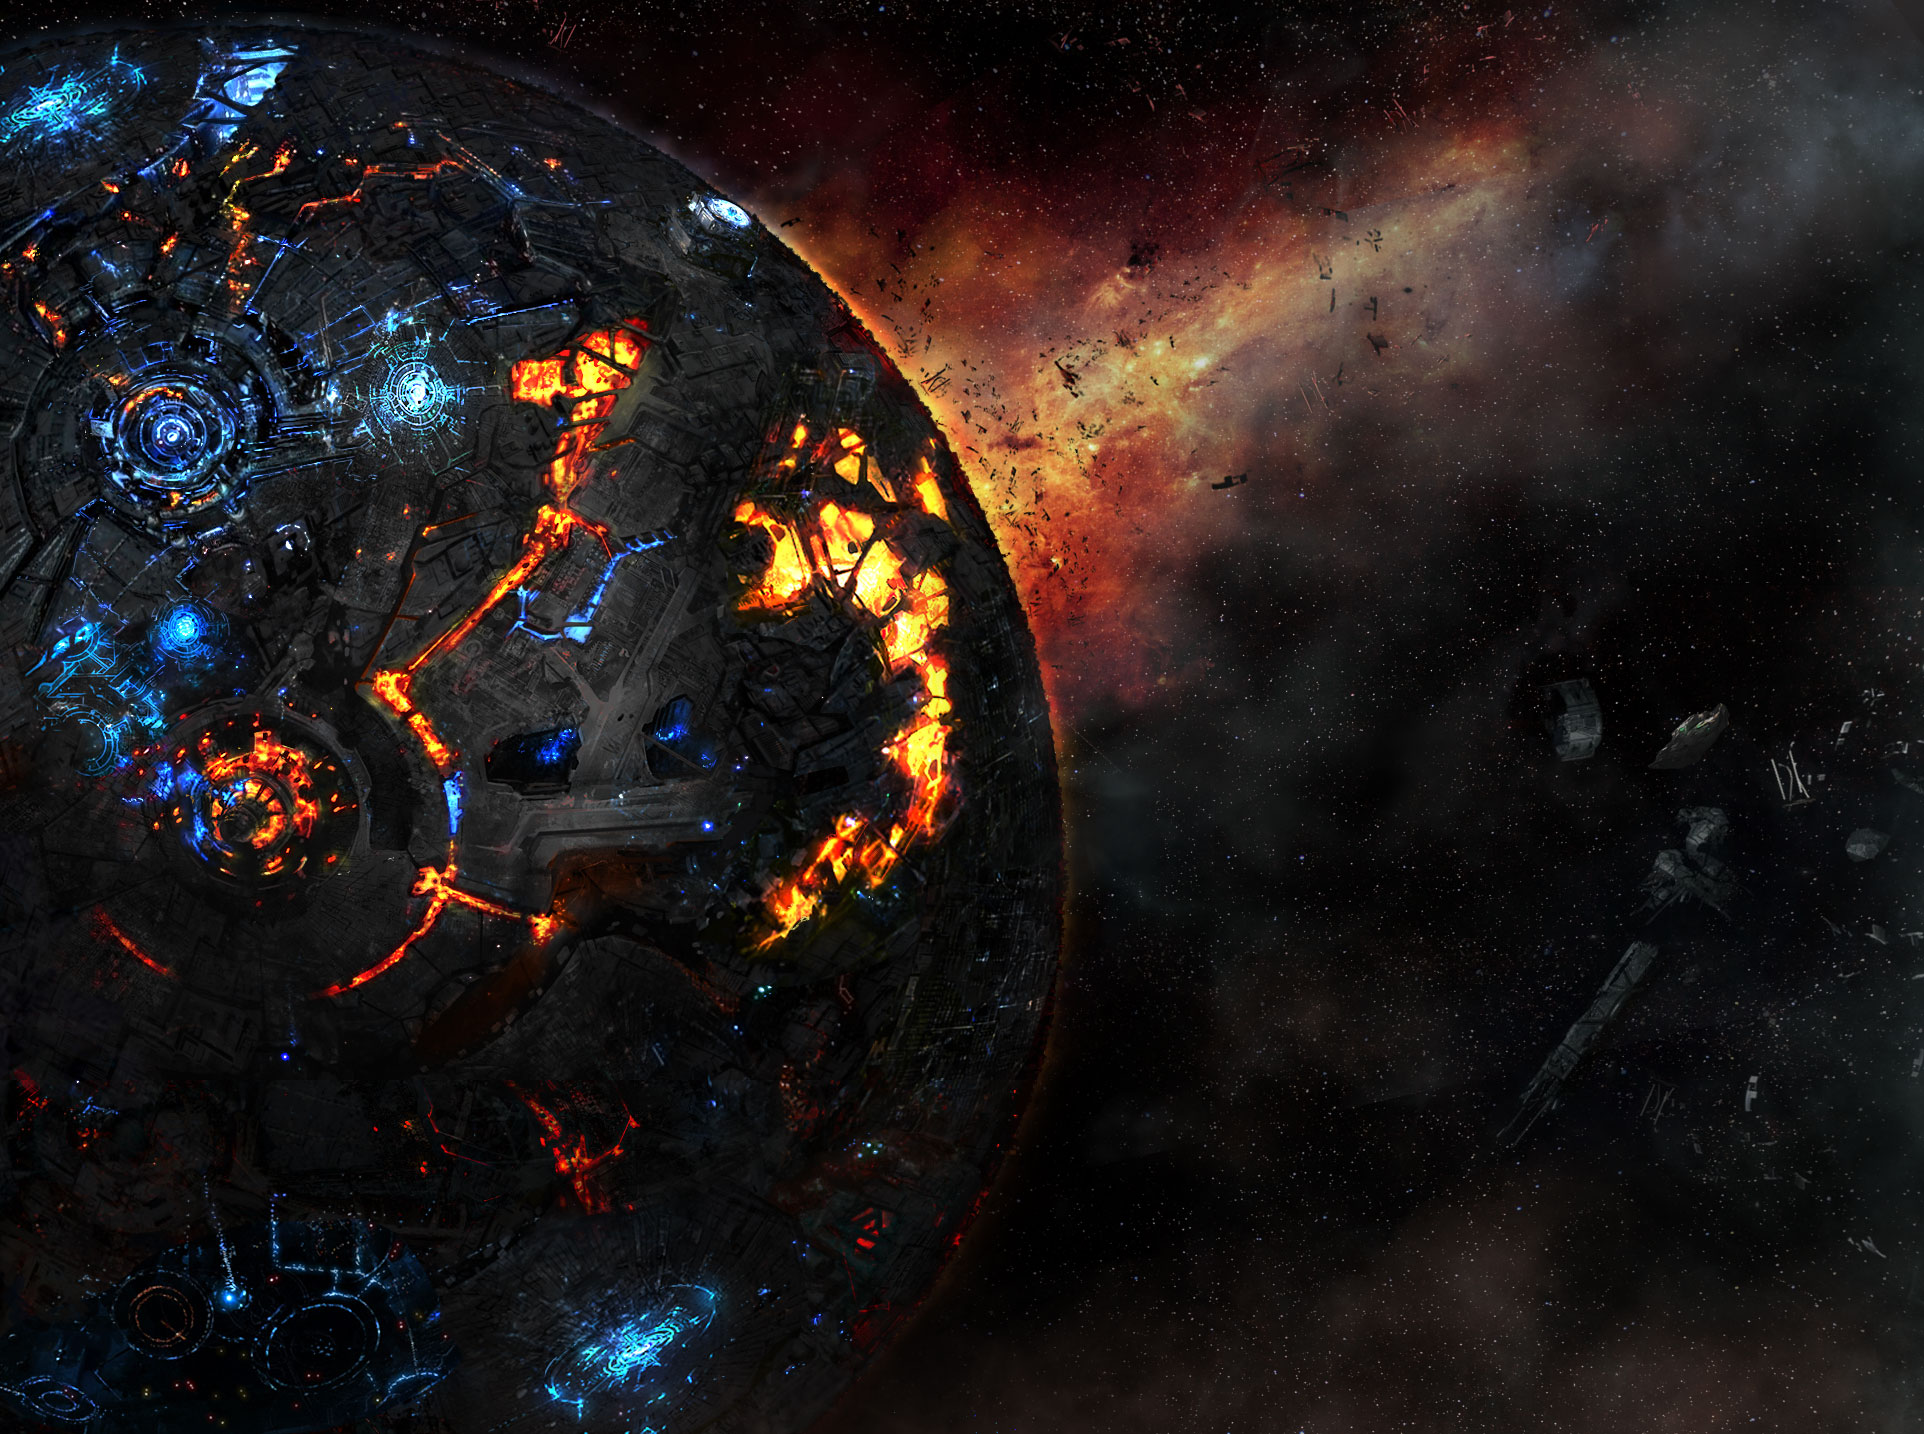 Transformers Fall of Cybertron Planet Wallpapers 1924x1434 pixel 1924x1434